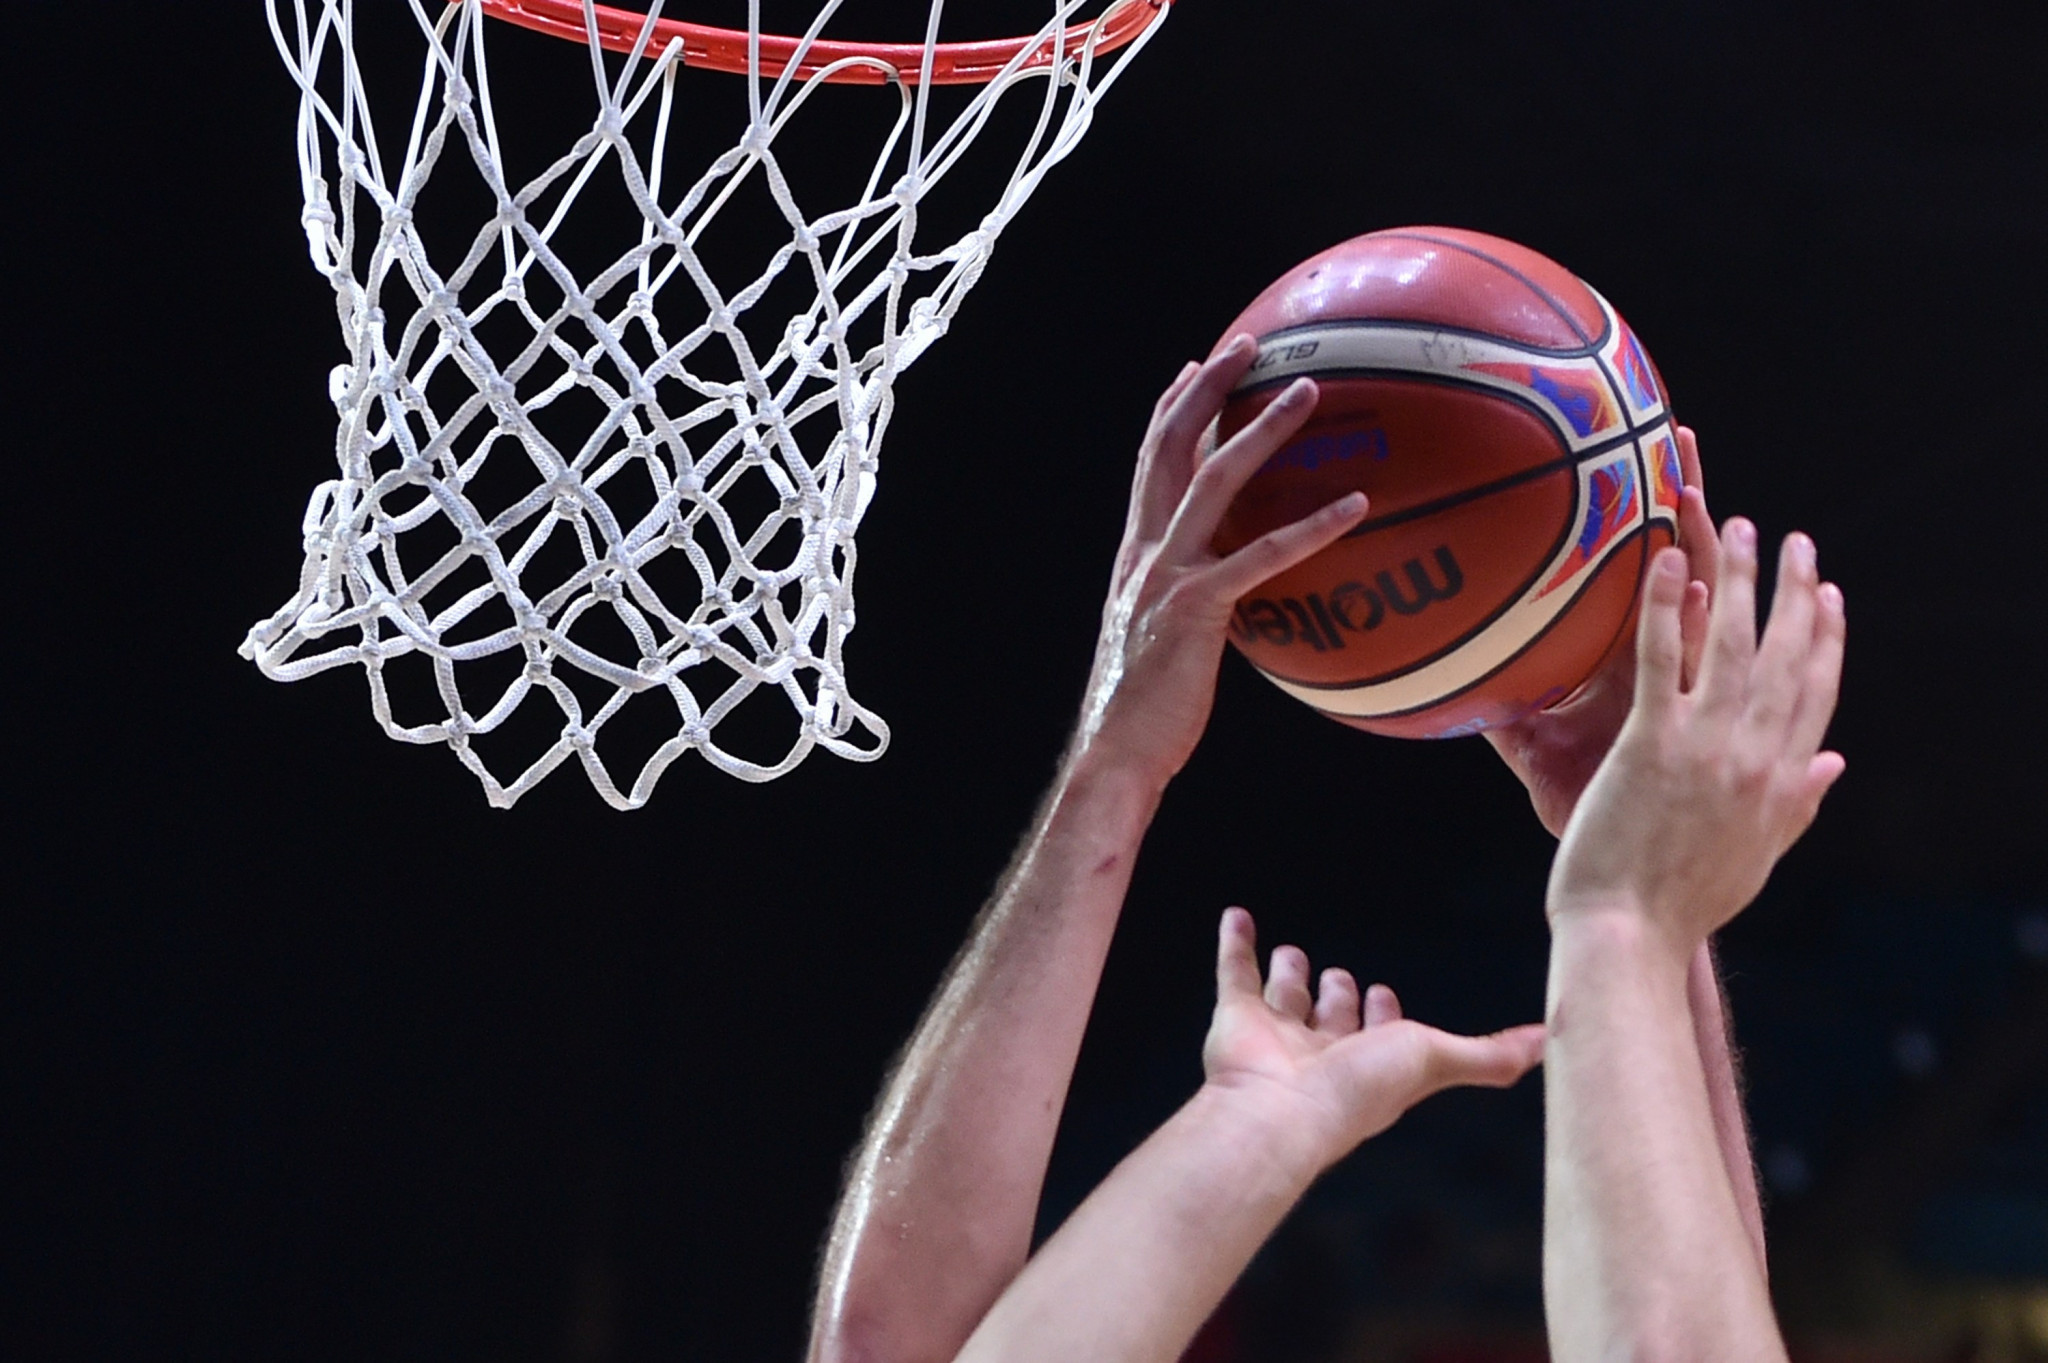 Under-19 Basketball World Cup set for tip-off in Latvia